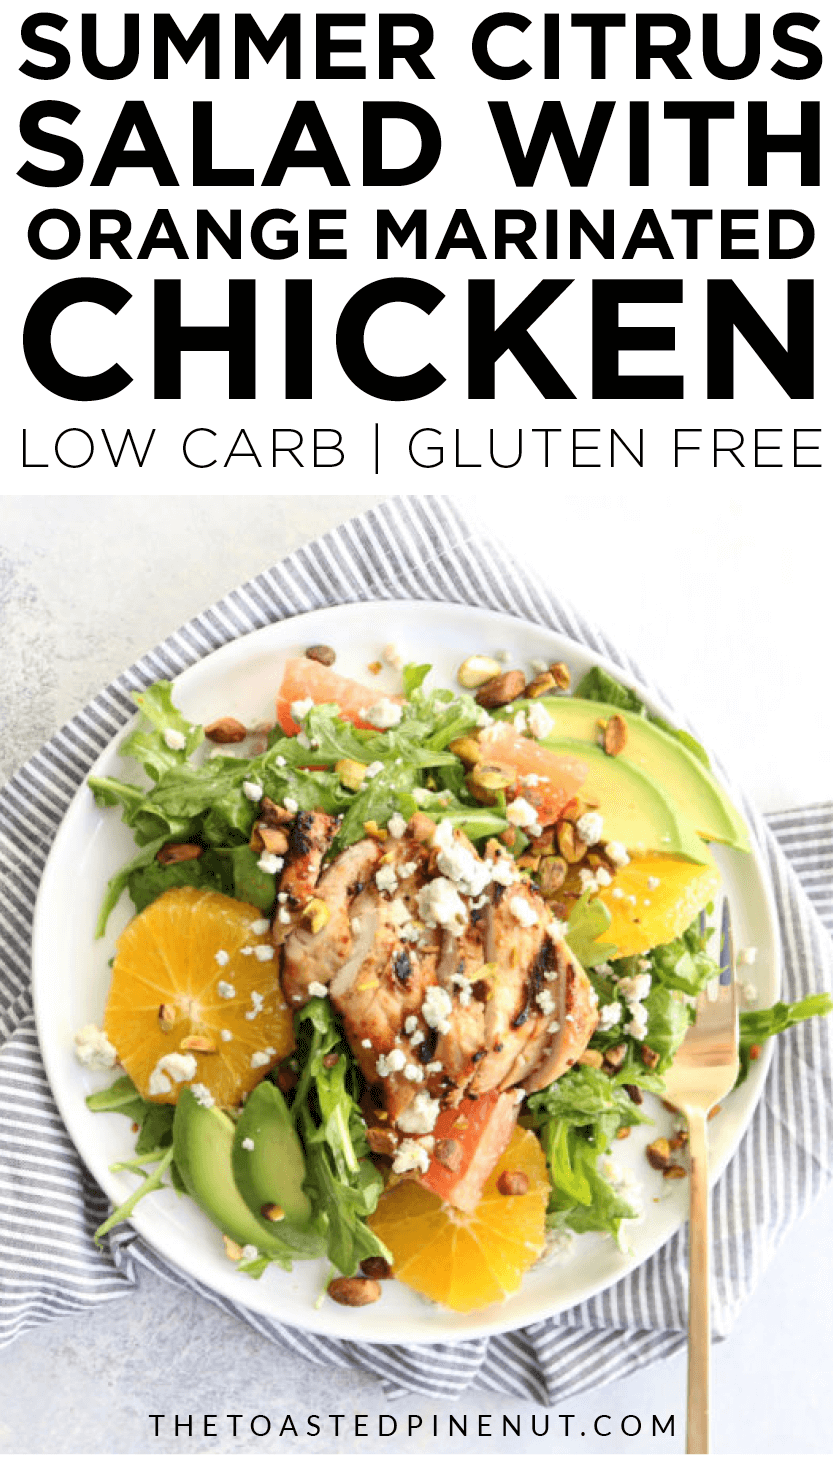 The best summer citrus salad that will get you ready for grilling season! The orange chicken is so sweet and tangy, you'll be wanting seconds. thetoastedpinenut.com #thetoaastedpinenut #summer #salad #citrus #orangechicken #lowcarb #glutenfree #easydinner #weeknightmeal